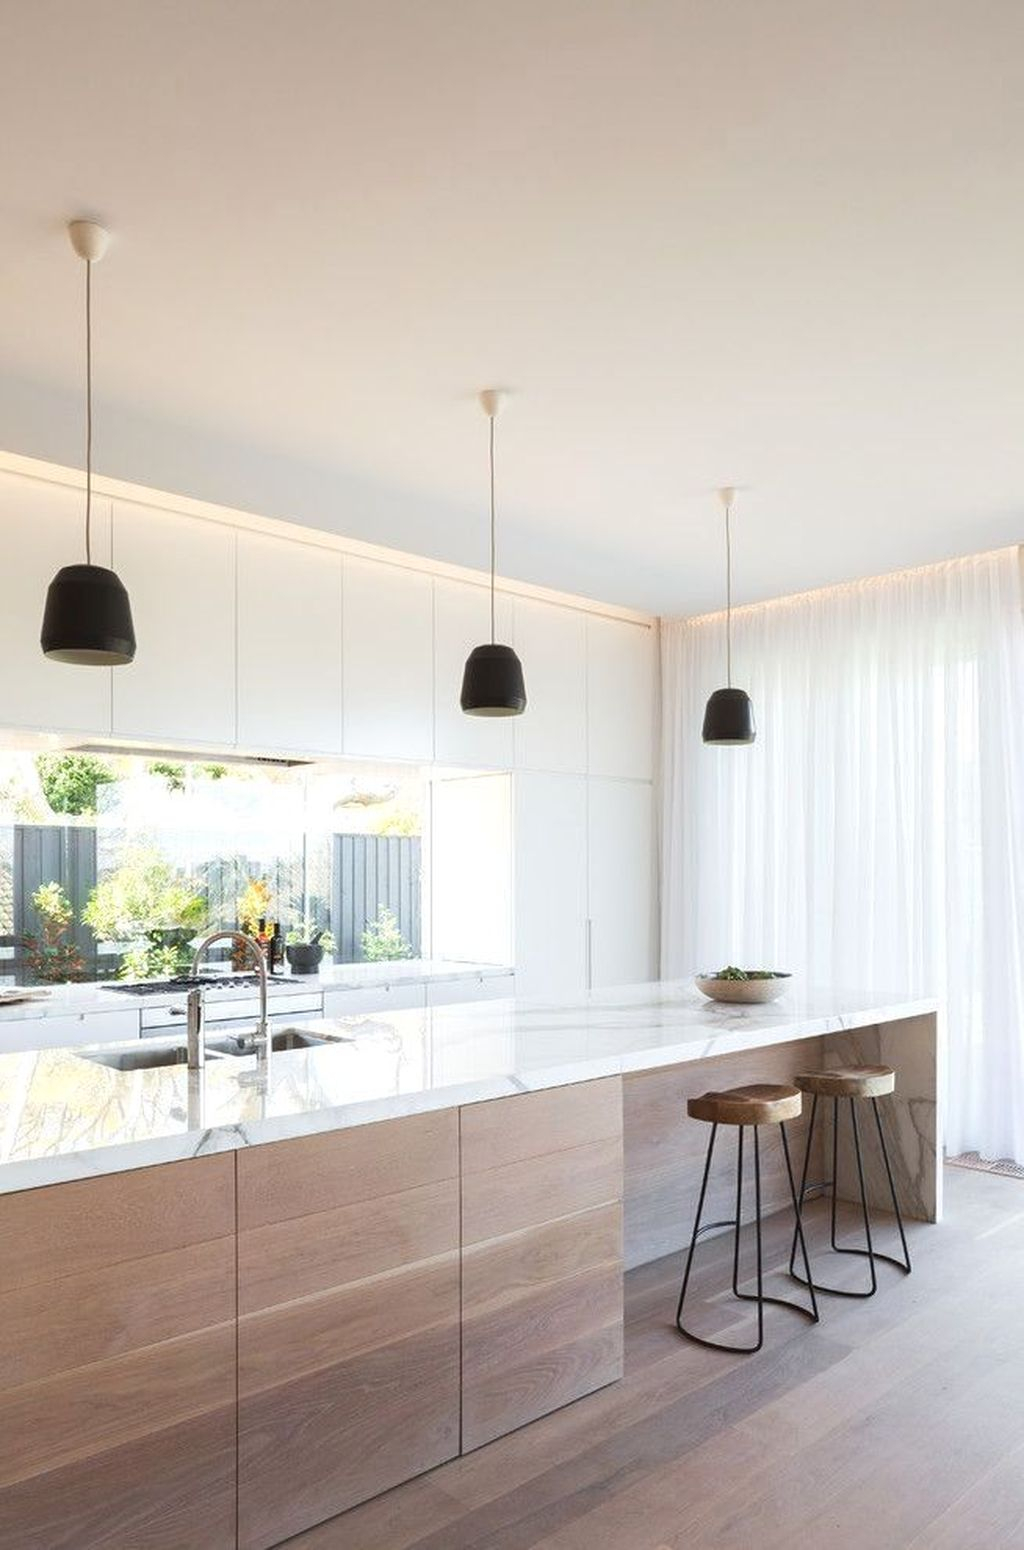 Amazing Scandinavian Kitchen Design Ideas With Island And Cabinets To Try11